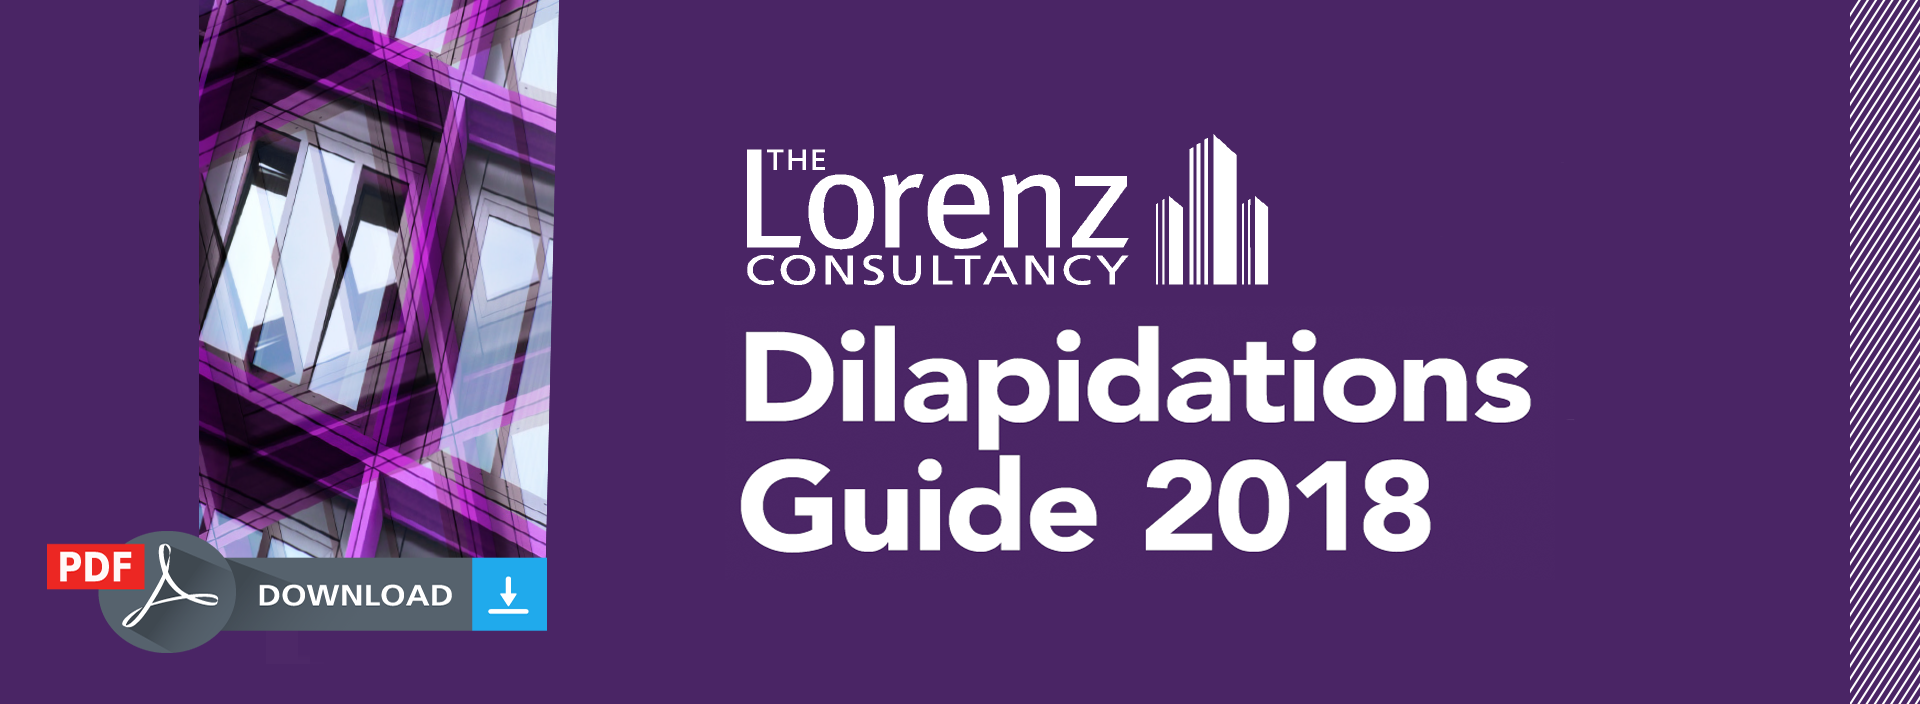 Dilapidations Guide - Landing Page Header.png